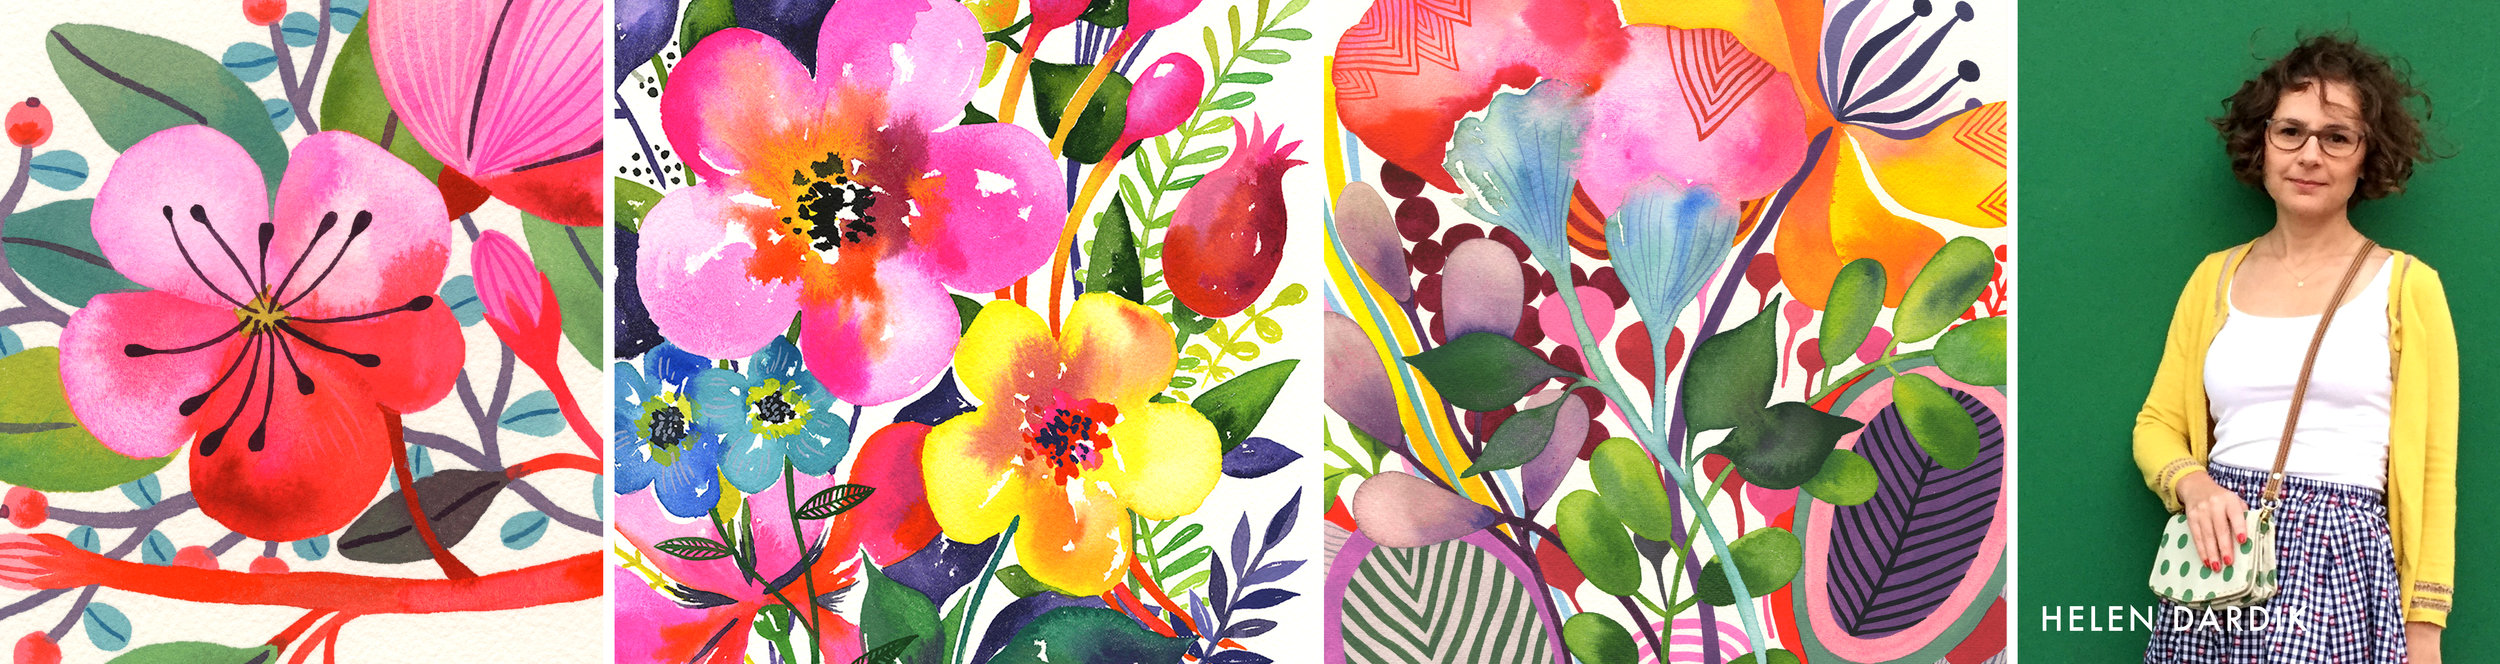 Helen Dardik is a professional illustrator and a surface/pattern designer based in Canada. Vibrant, folksy, playful toomuchery is a perfect way to describe her style. Born by the Black Sea, Helen lived in Siberia for a time and then moved to Israel, where she studied art and design. In the early nineties she relocated to Canada, where she got a graphic design degree and found work as a designer and illustrator.